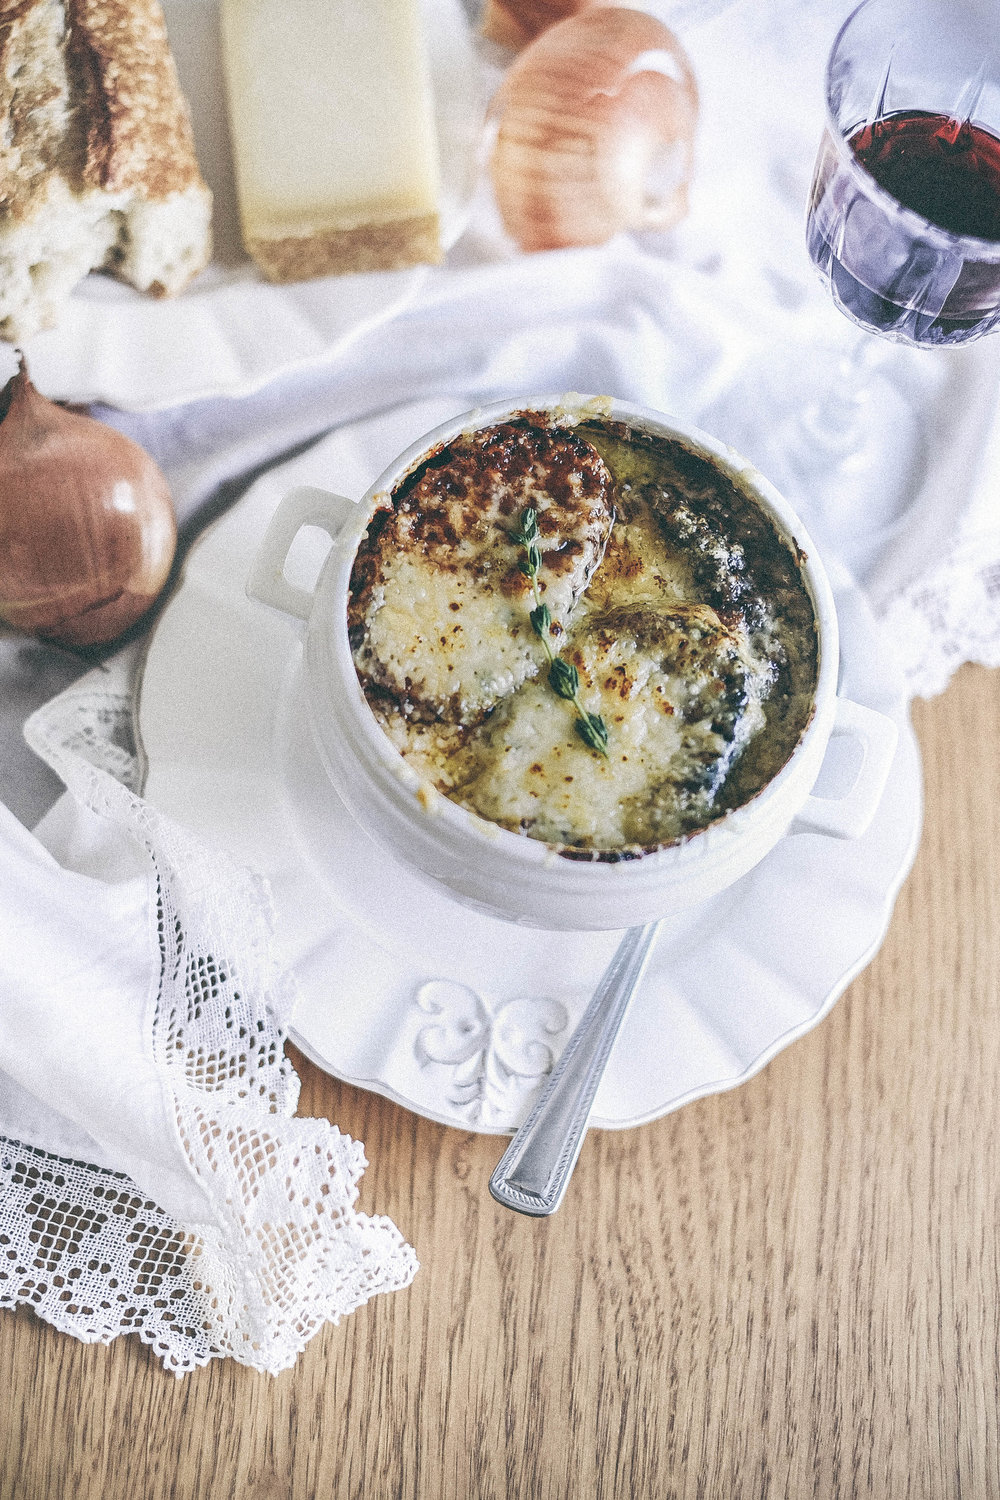 dérrive recipe - red wine and bone broth french onion soup www.derrive.com #bonebroth #redwine #frenchonionsoup #onionsoup #frenchcusine #soup #guthealth #cheese #foodblog